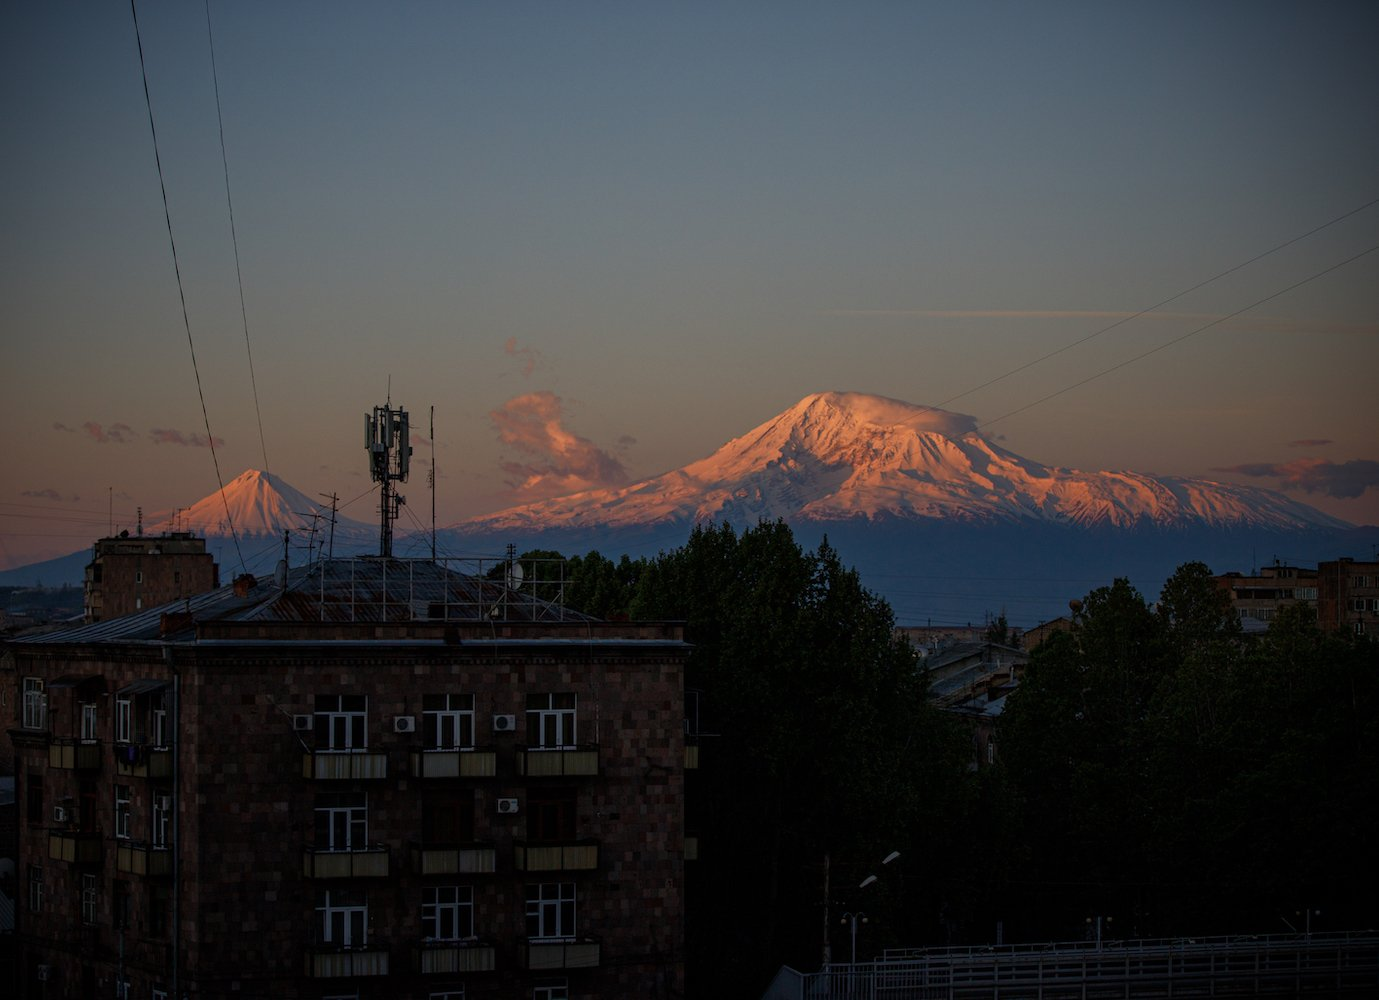 The 8 cultural moments that shaped post-independence Armenia